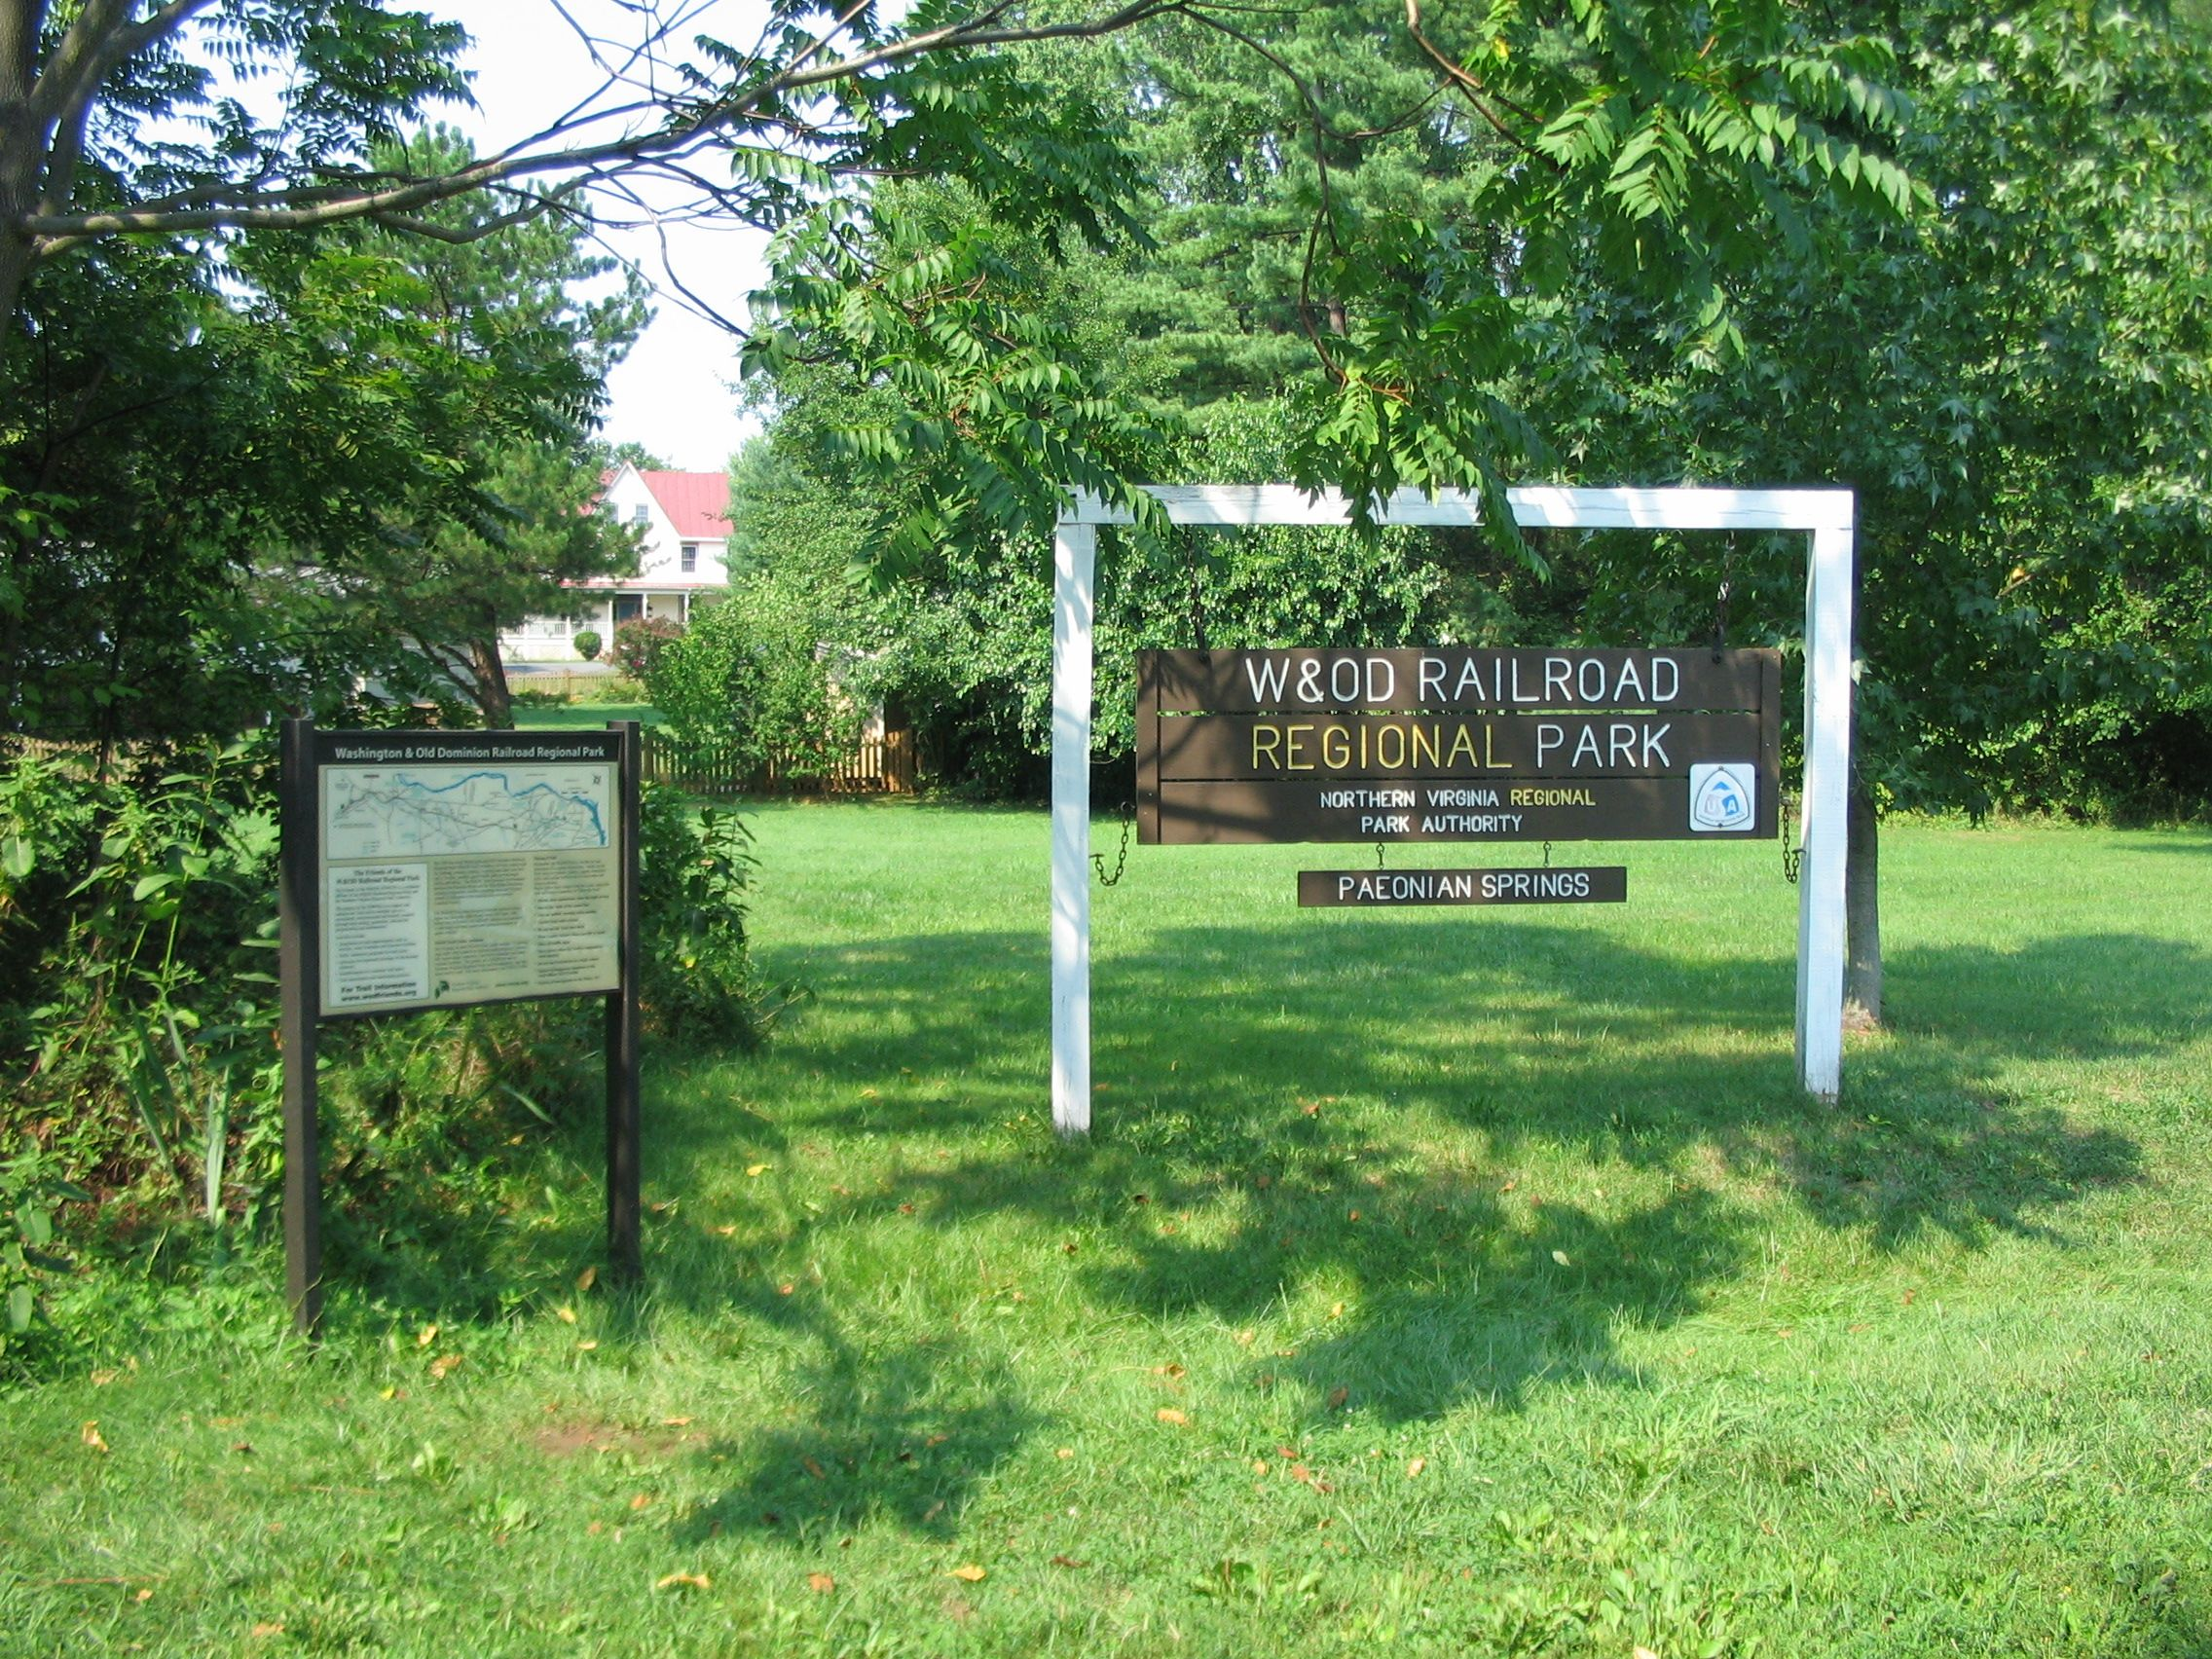 Nearby Trailhead Sign and Informational Display